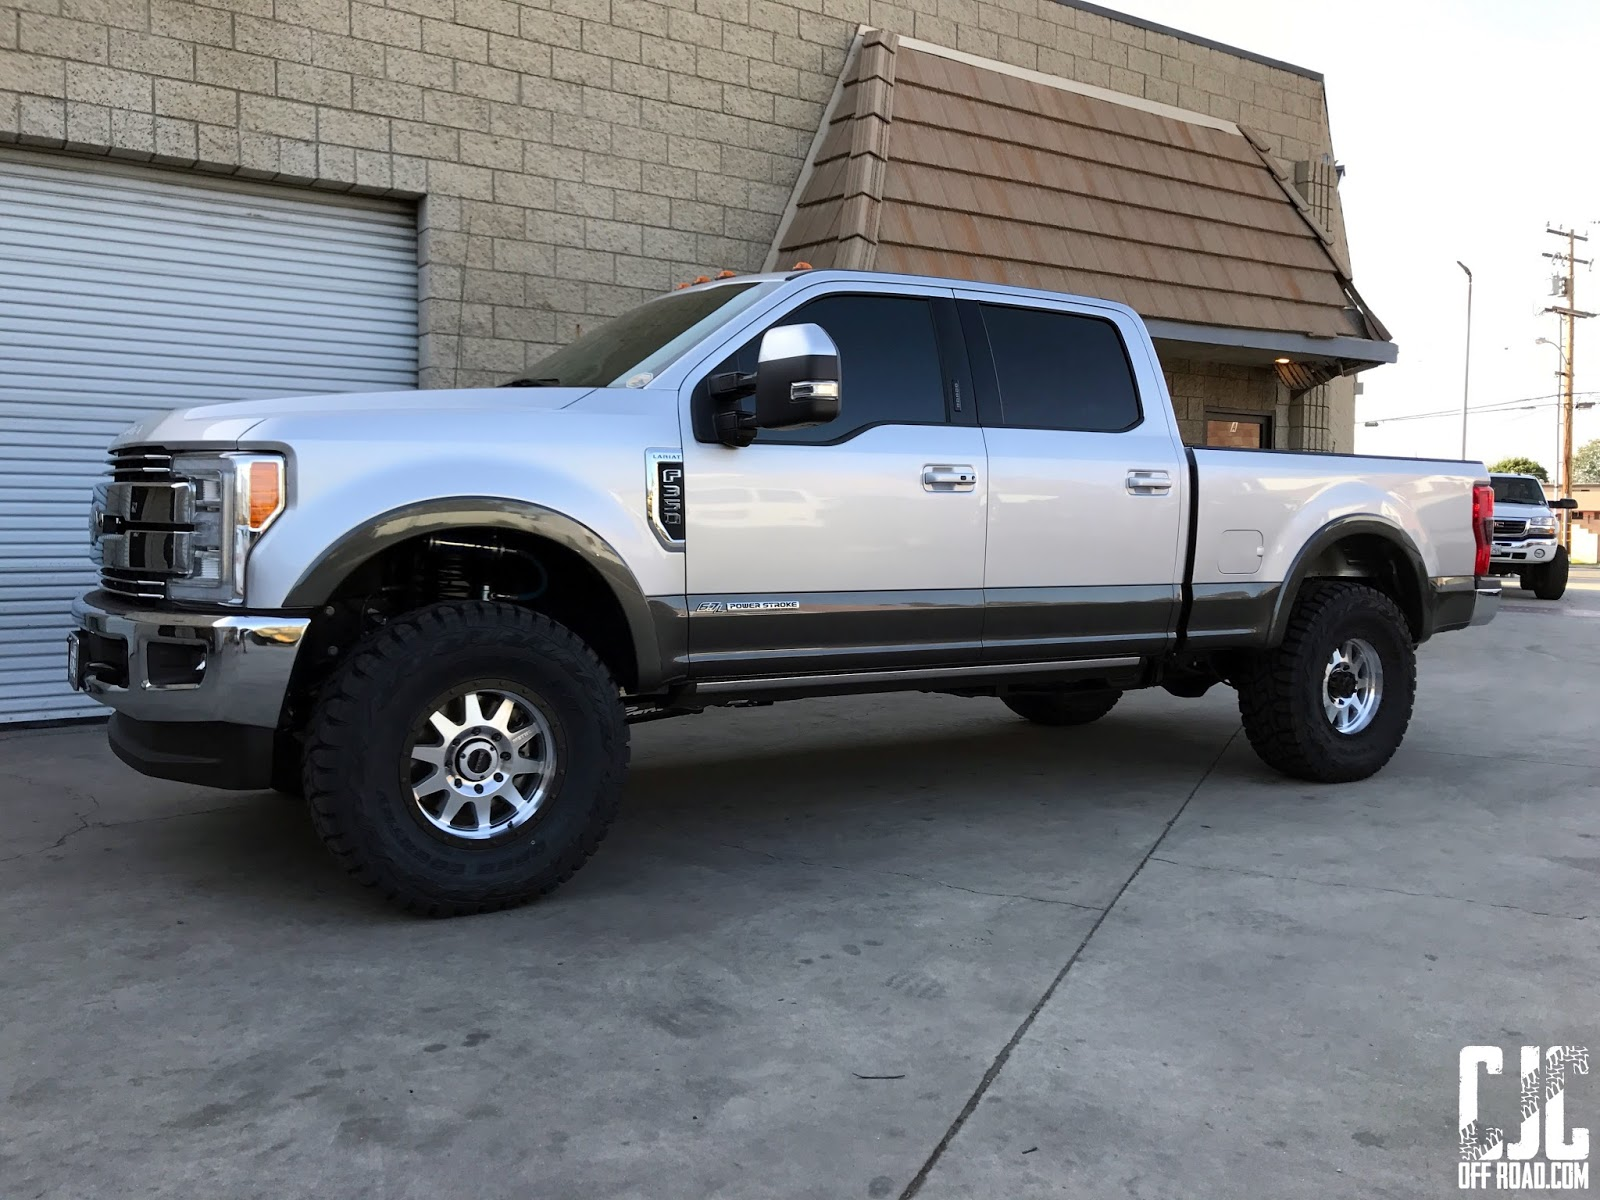 2016 Ford Super Duty >> CJC Off Road Blog: Carli 2017+ F250/F350 Super Duty ...